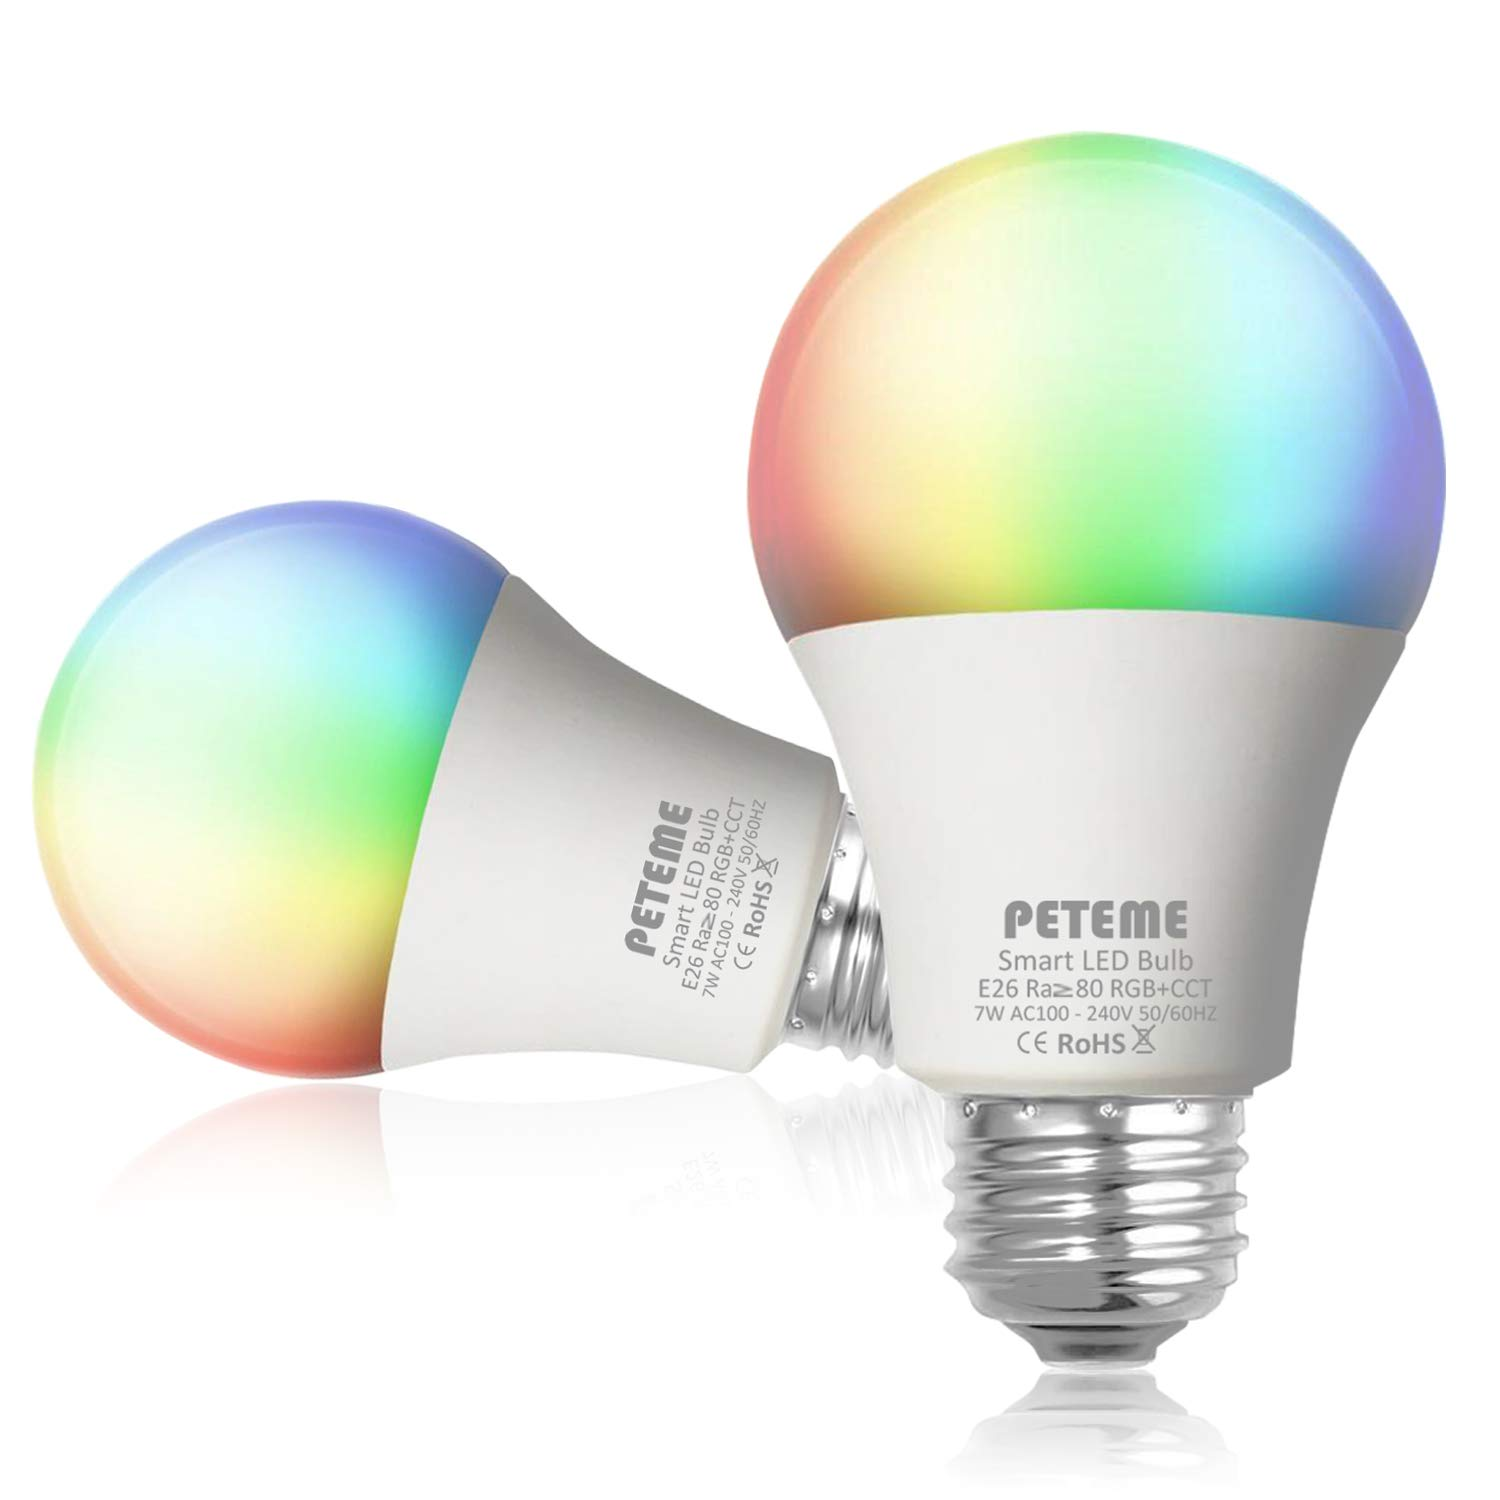 Smart LED Light Bulb E26 WiFi Multicolor Light Bulb Work with Siri,Alexa, Echo, Google Home and IFTTT (No Hub Required), Peteme A19 60W Equivalent RGB Color Changing Bulb (2 Pack) by Peteme (Image #1)